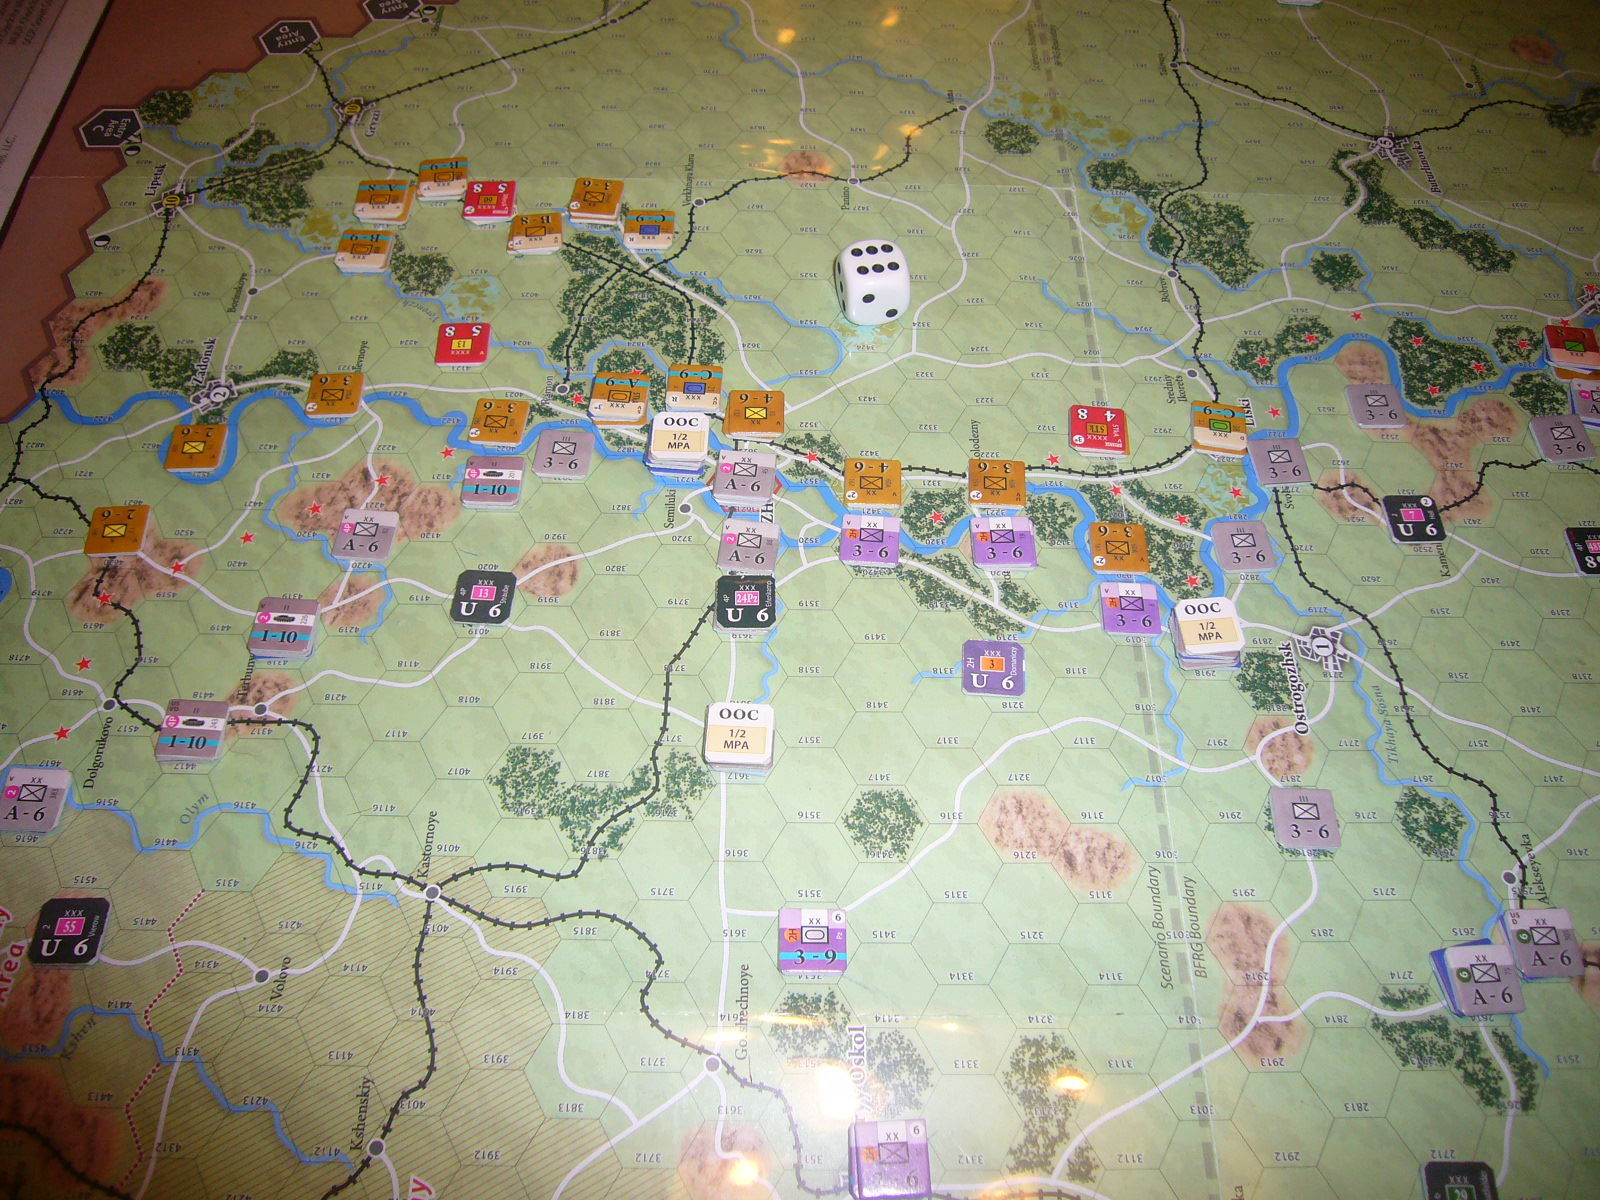 (Compass)FALL BLAU: Army Group South, June to December 1942 青作戦:史実の7月キャンペーンお試し5人戦➌_b0173672_19583204.jpg